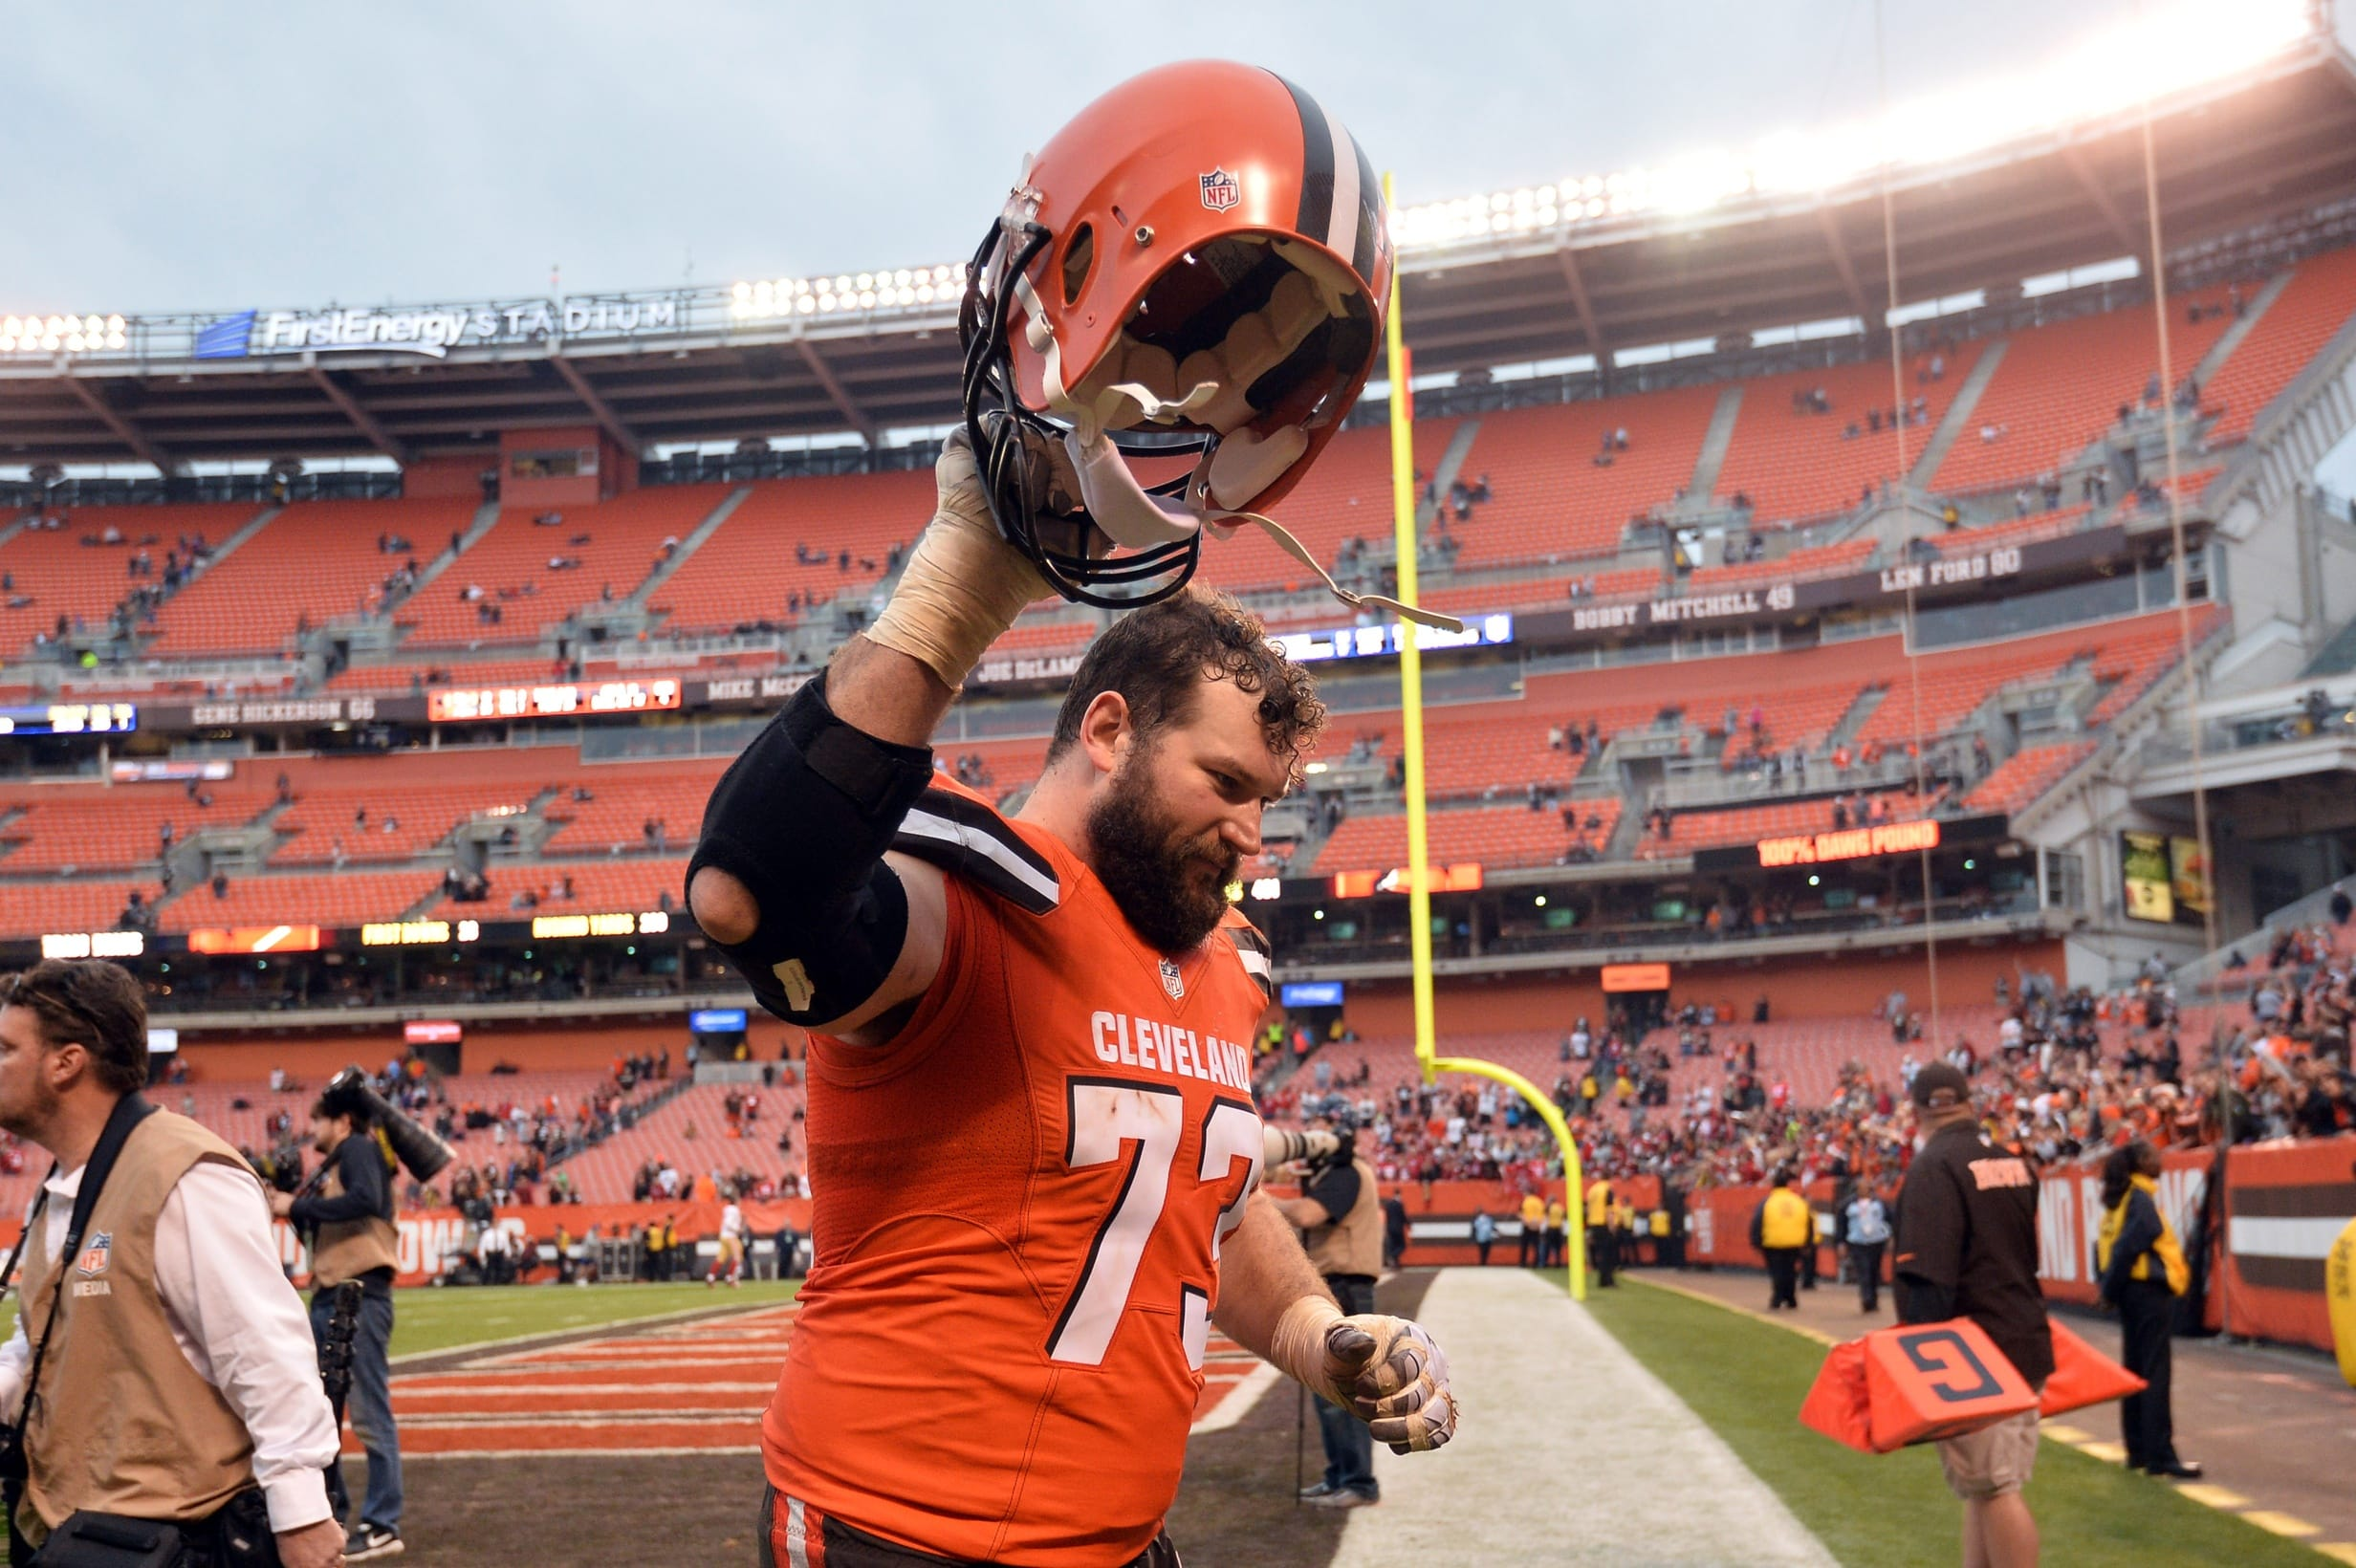 Joe Thomas blasted United Airlines